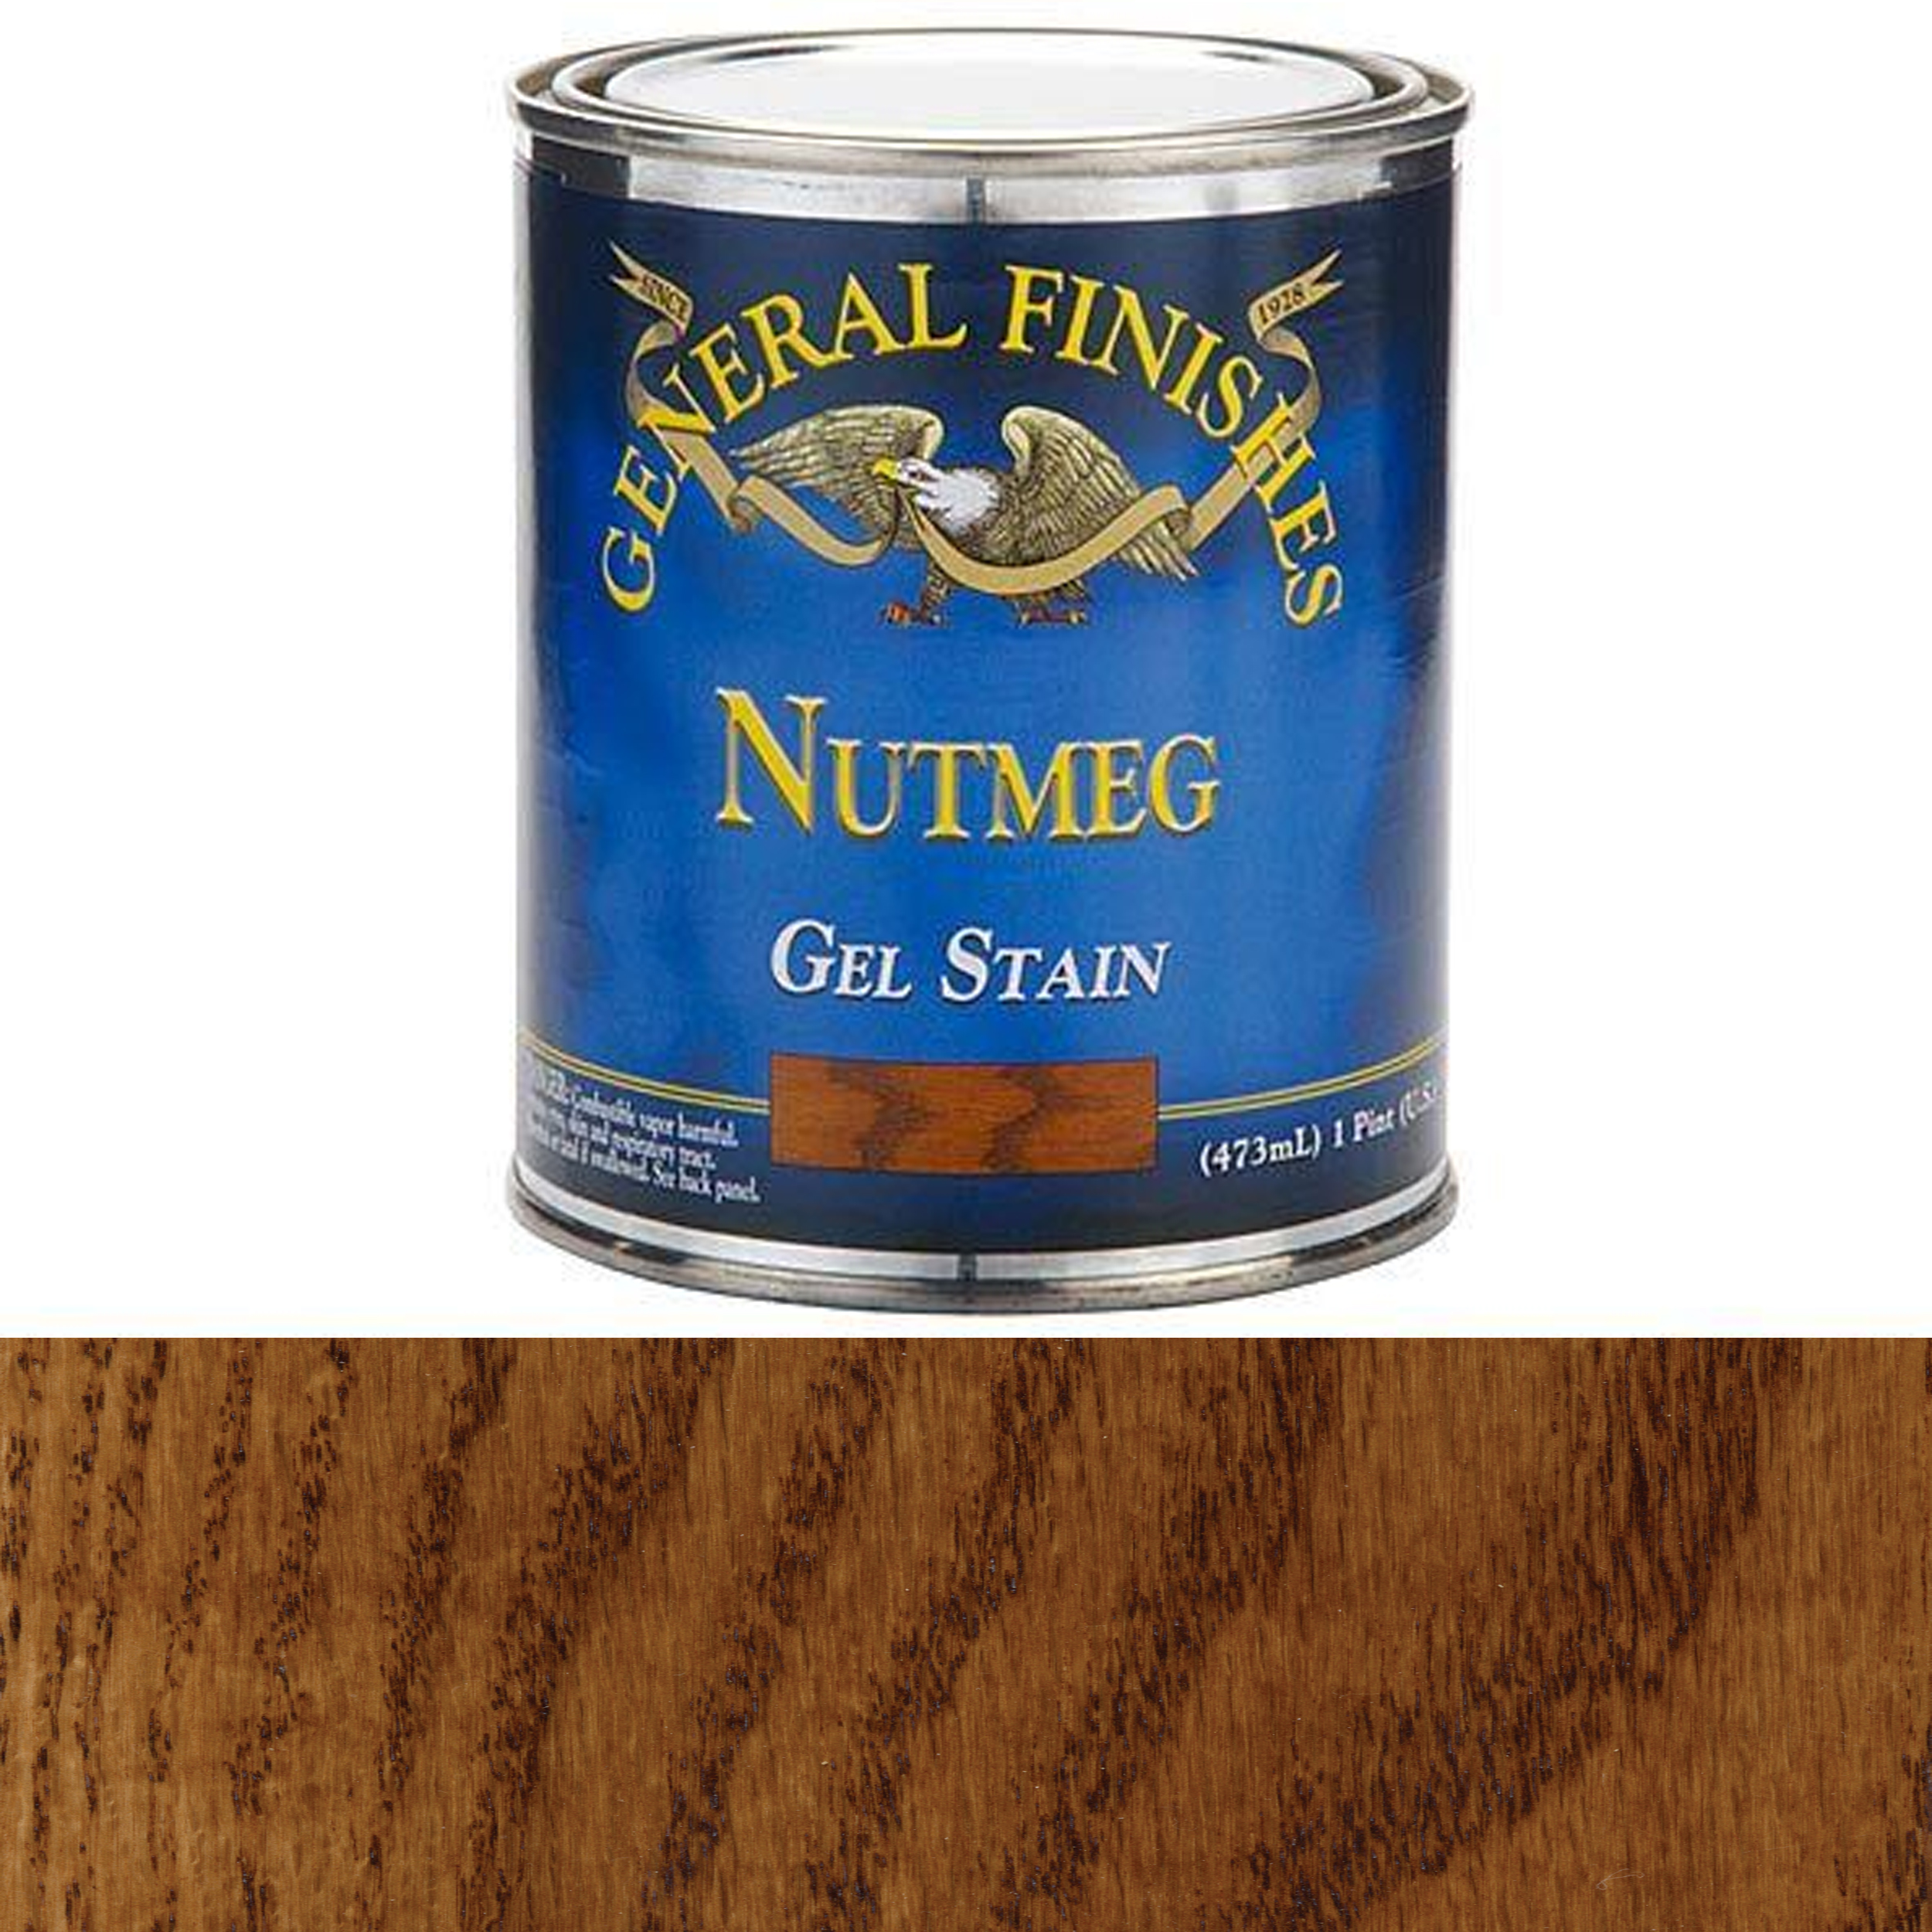 Nutmeg Gel Stain, Pint